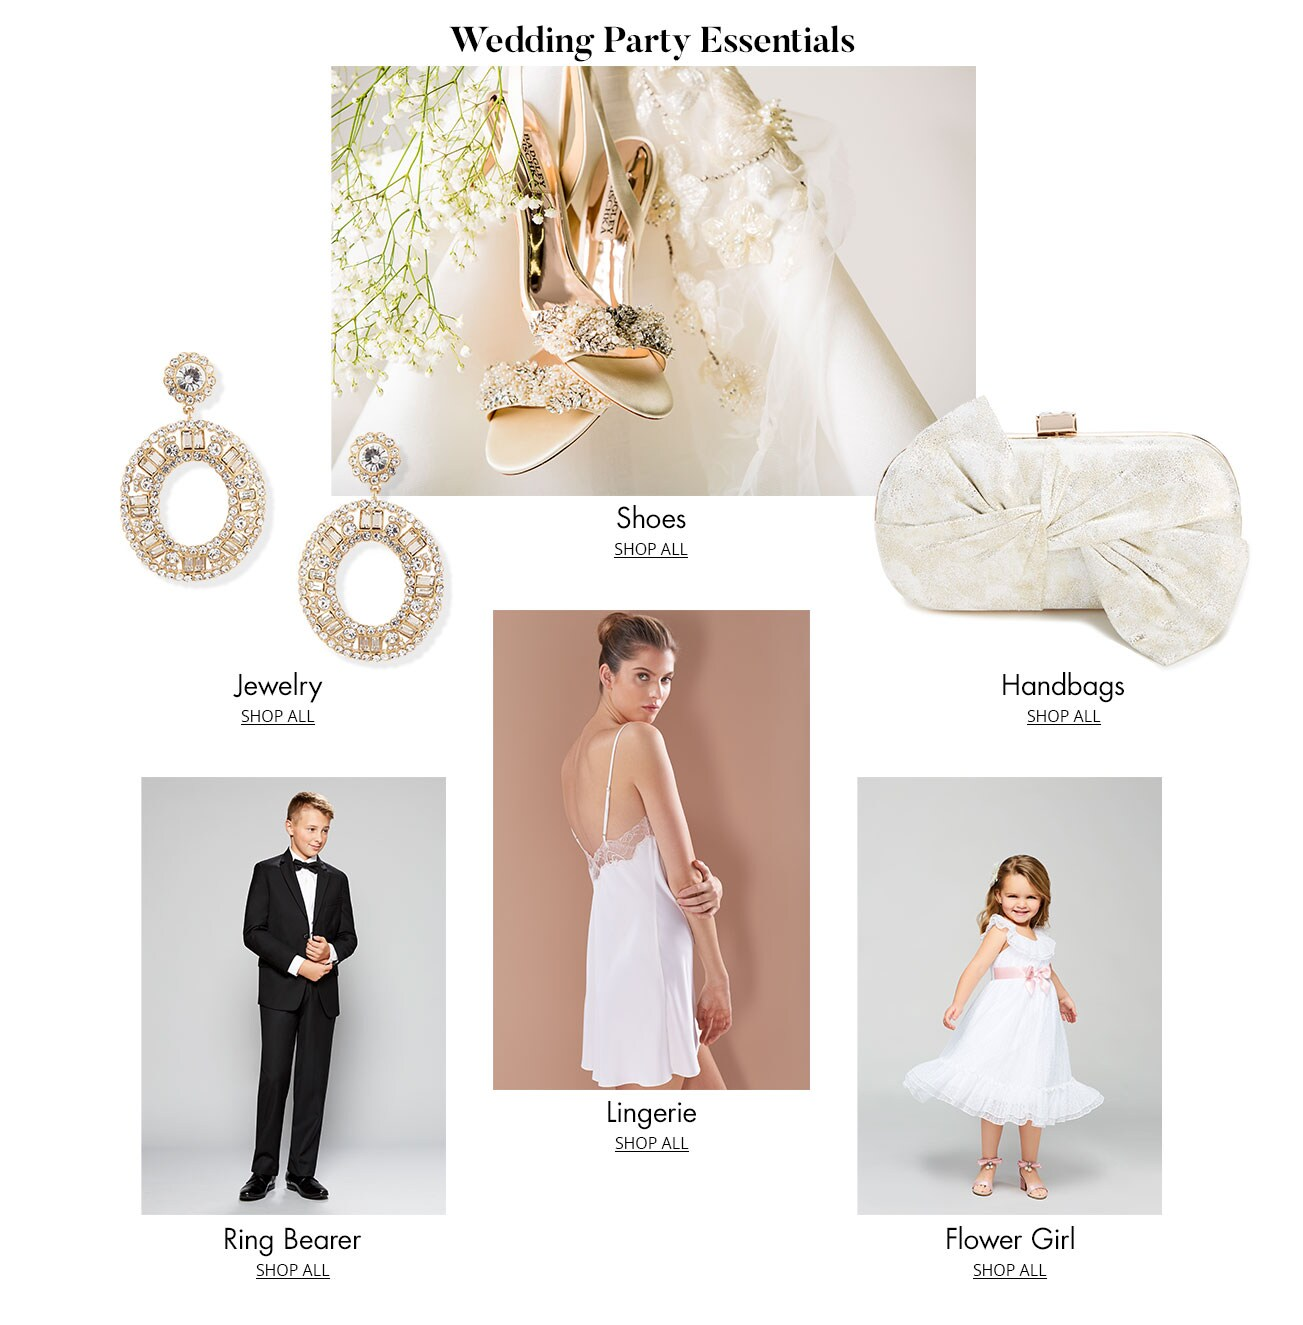 Wedding Gowns Online Shopping: Bridal Gowns & Wedding Party Attire